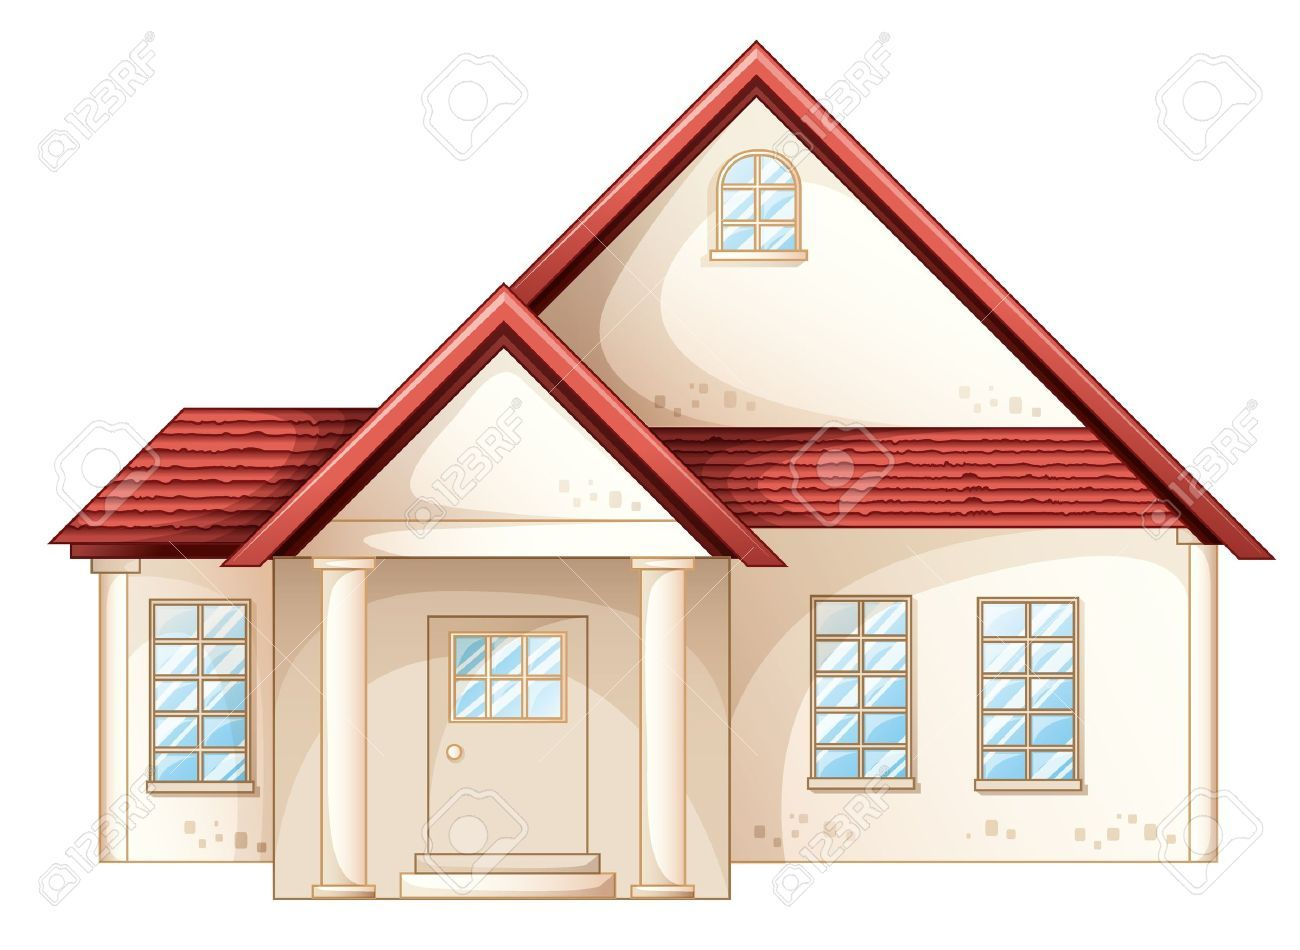 Illustration A Simple House Front View Simple House House Image House